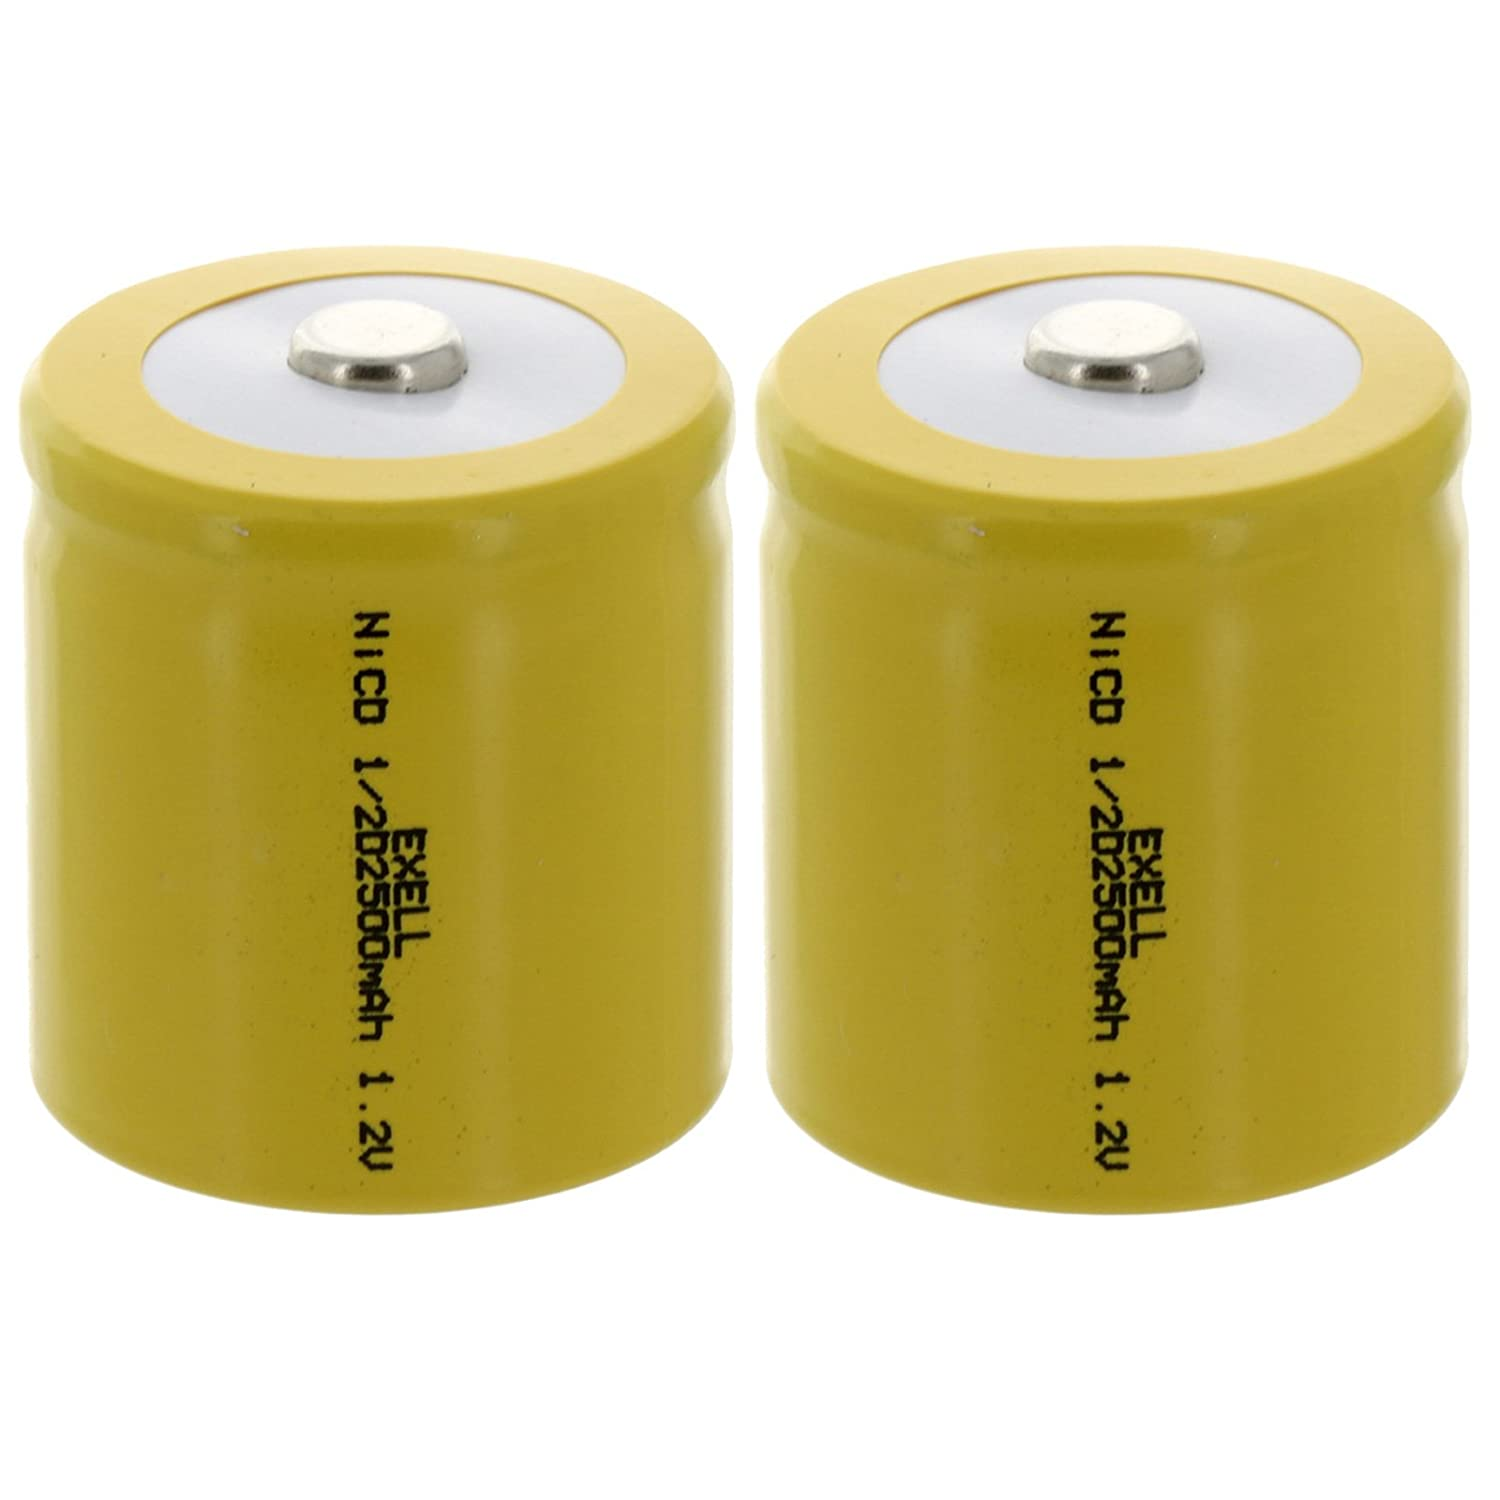 2x Exell 1/2D Size 1.2V 2500mAh NiCD Button Top Rechargeable Batteries for meters, radios, hybrid automobiles, high power static applications (Telecoms, UPS and Smart grid), RC devices